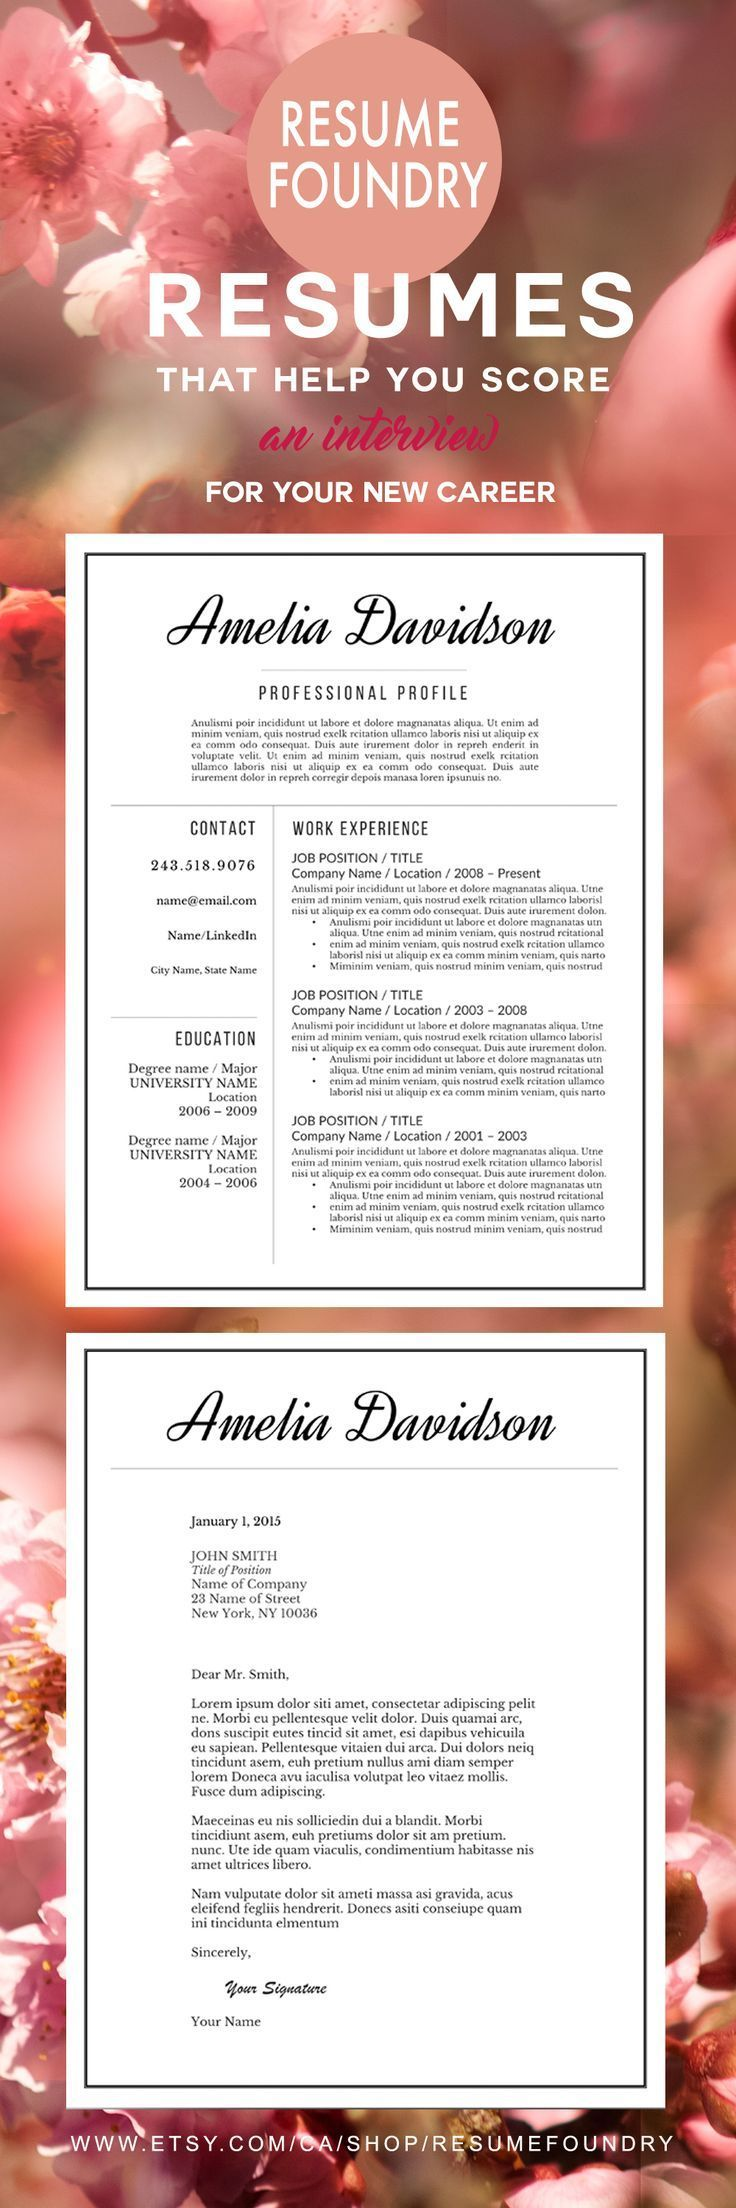 Beautiful resume template from Resume Foundry 438